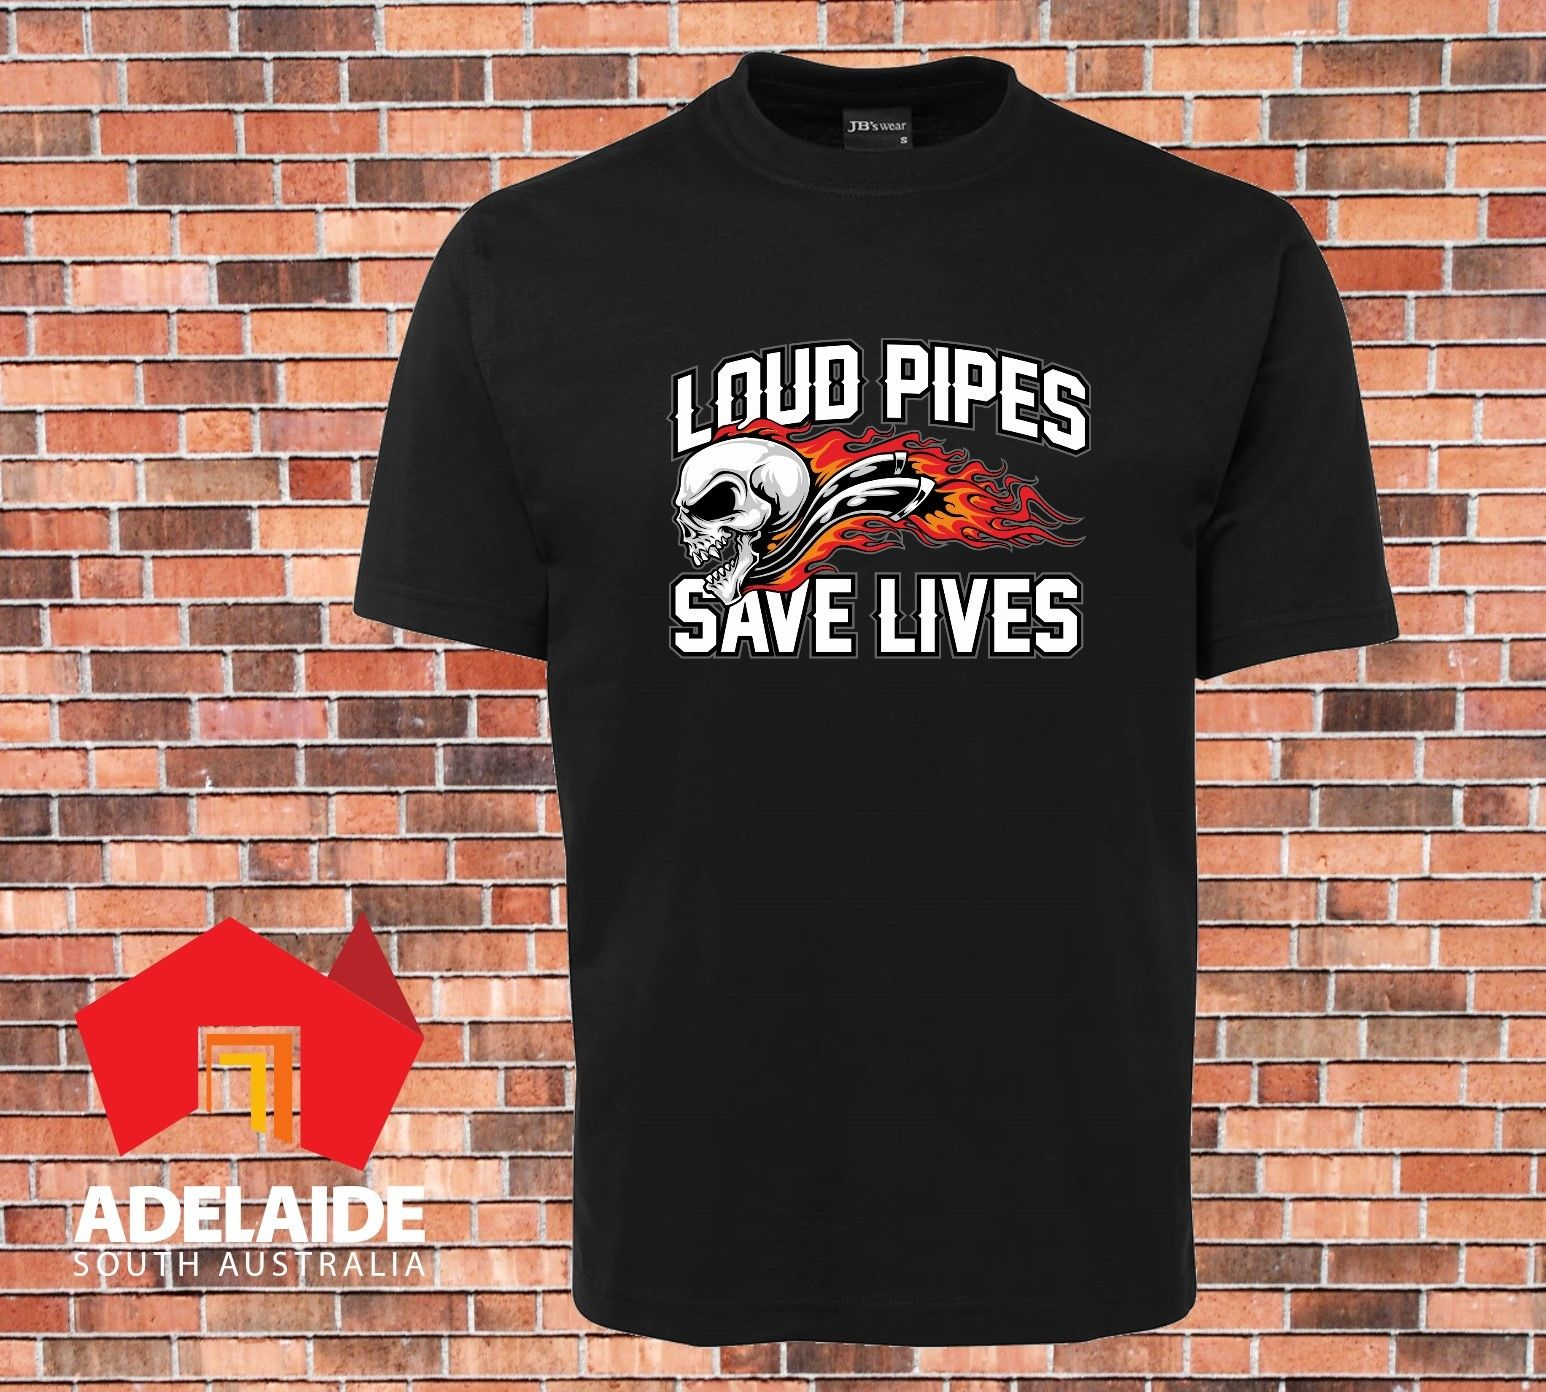 2018 Hot Sale 100% cotton T-shirt DTG Printed Loud Pipes Saves Lives Sizes S to 7XL Motorcycle, Cars Tee shirt